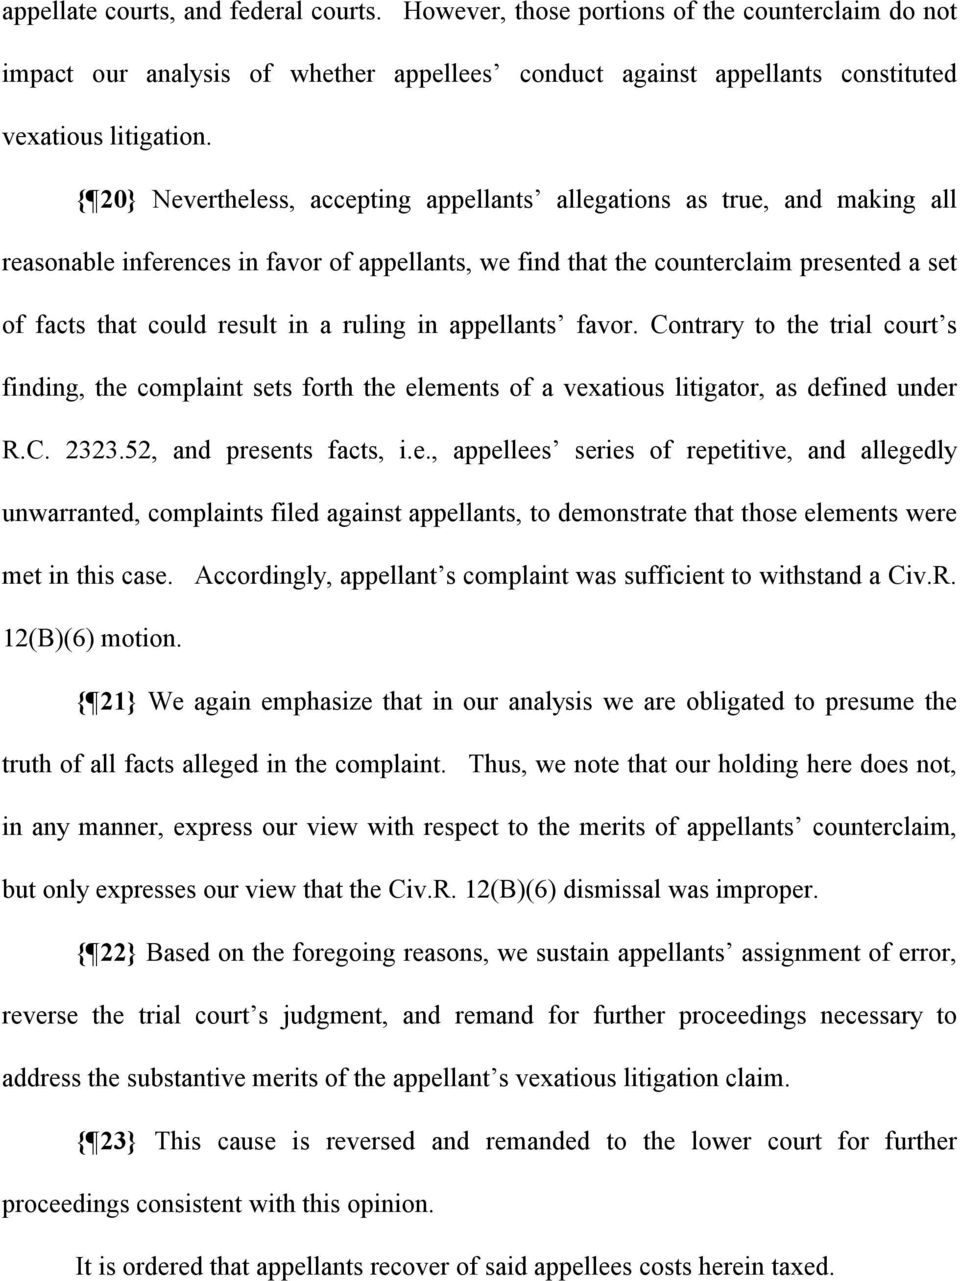 a ruling in appellants favor. Contrary to the trial court s finding, the complaint sets forth the elements of a vexatious litigator, as defined under R.C. 2323.52, and presents facts, i.e., appellees series of repetitive, and allegedly unwarranted, complaints filed against appellants, to demonstrate that those elements were met in this case.